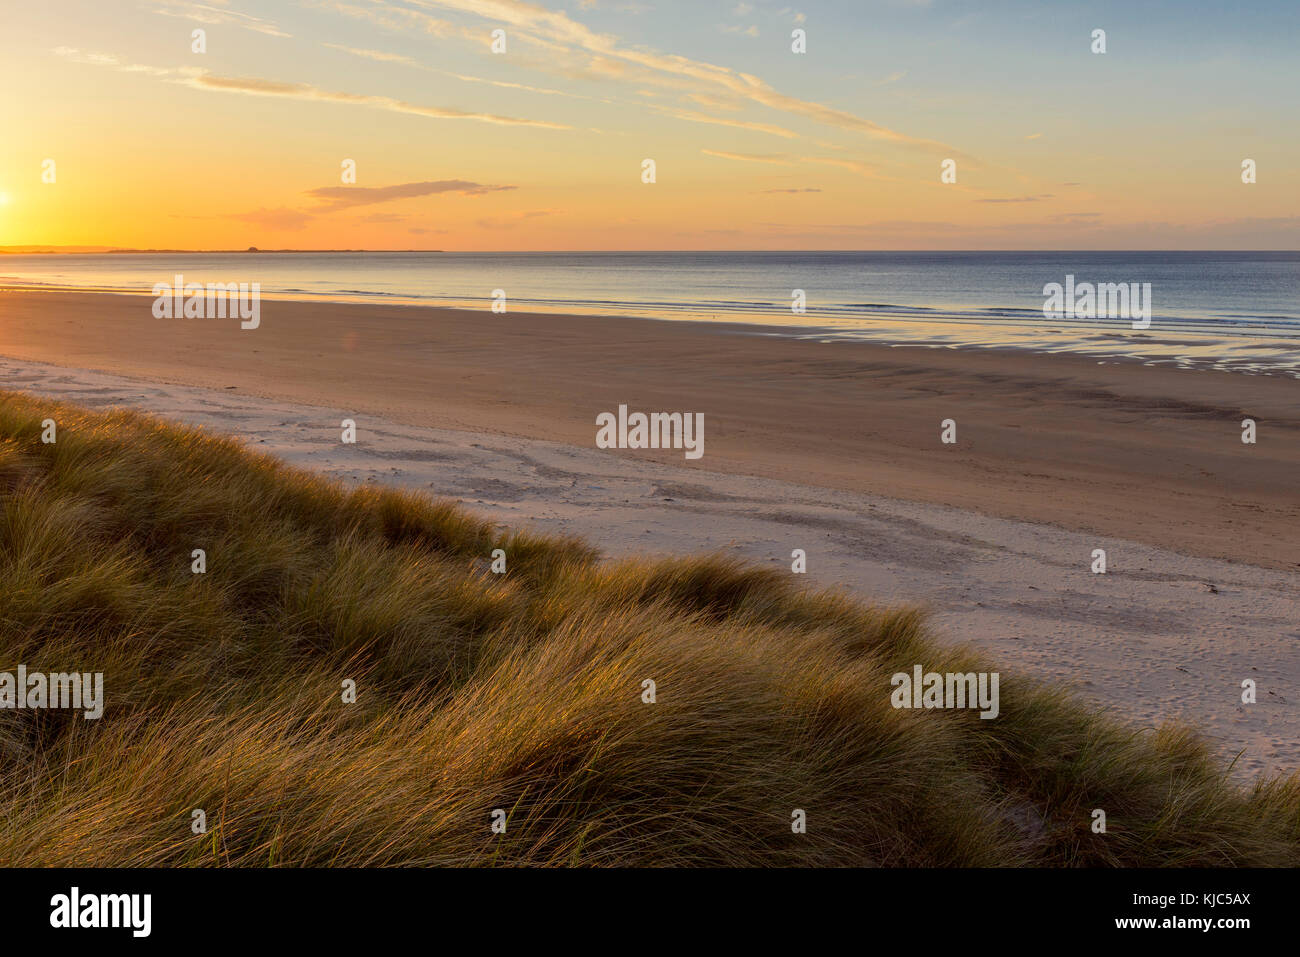 Sun reflecting on dune grass on the beach at sunrise at Bamburght over the North Sea in Northumberland, England, - Stock Image